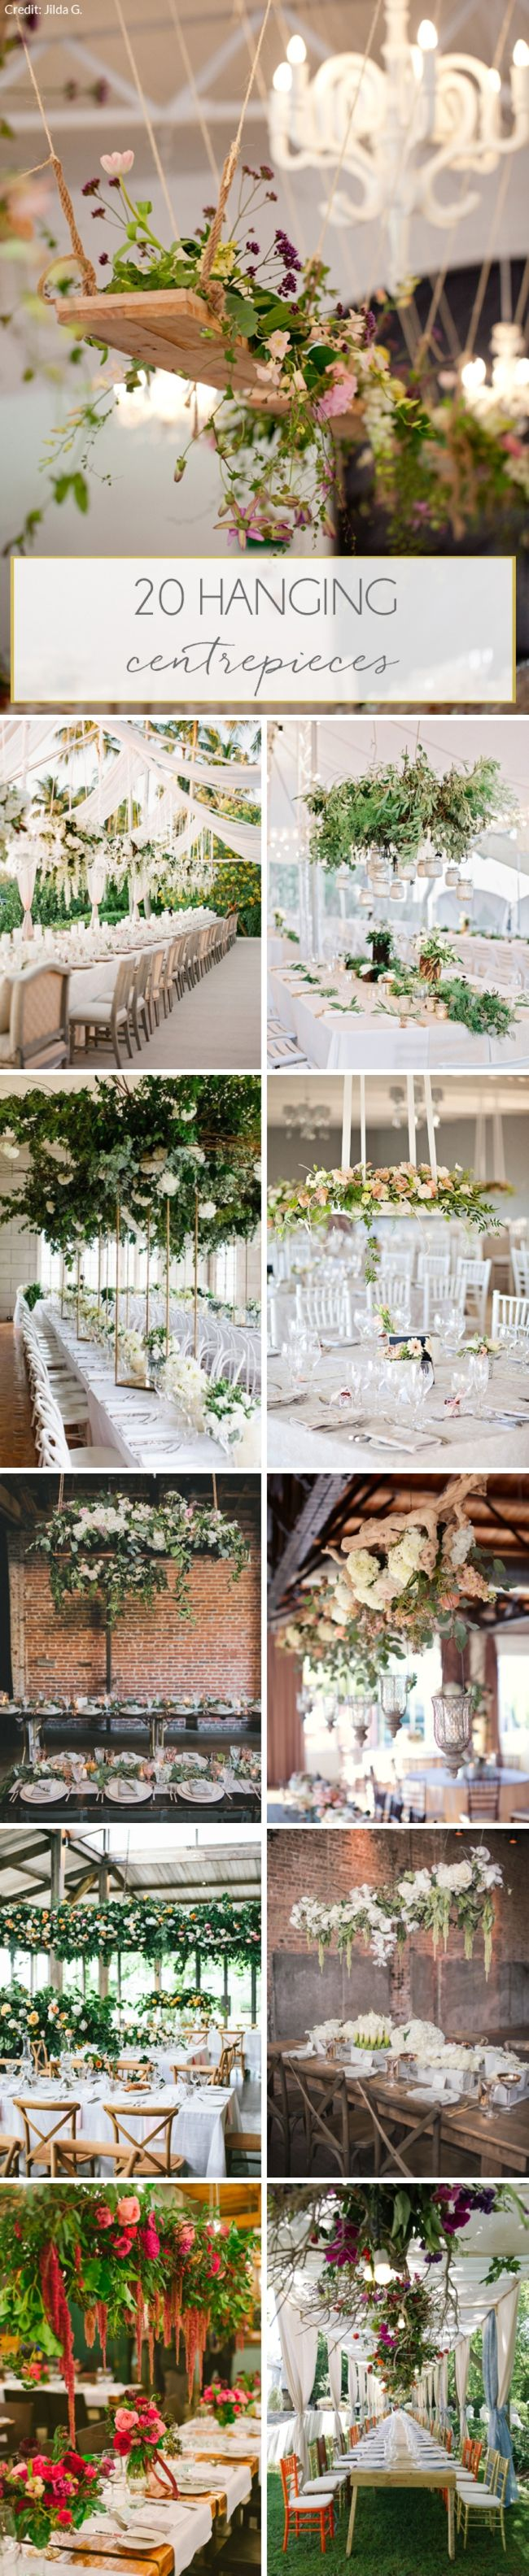 best awesome centerpieces images on pinterest centerpieces